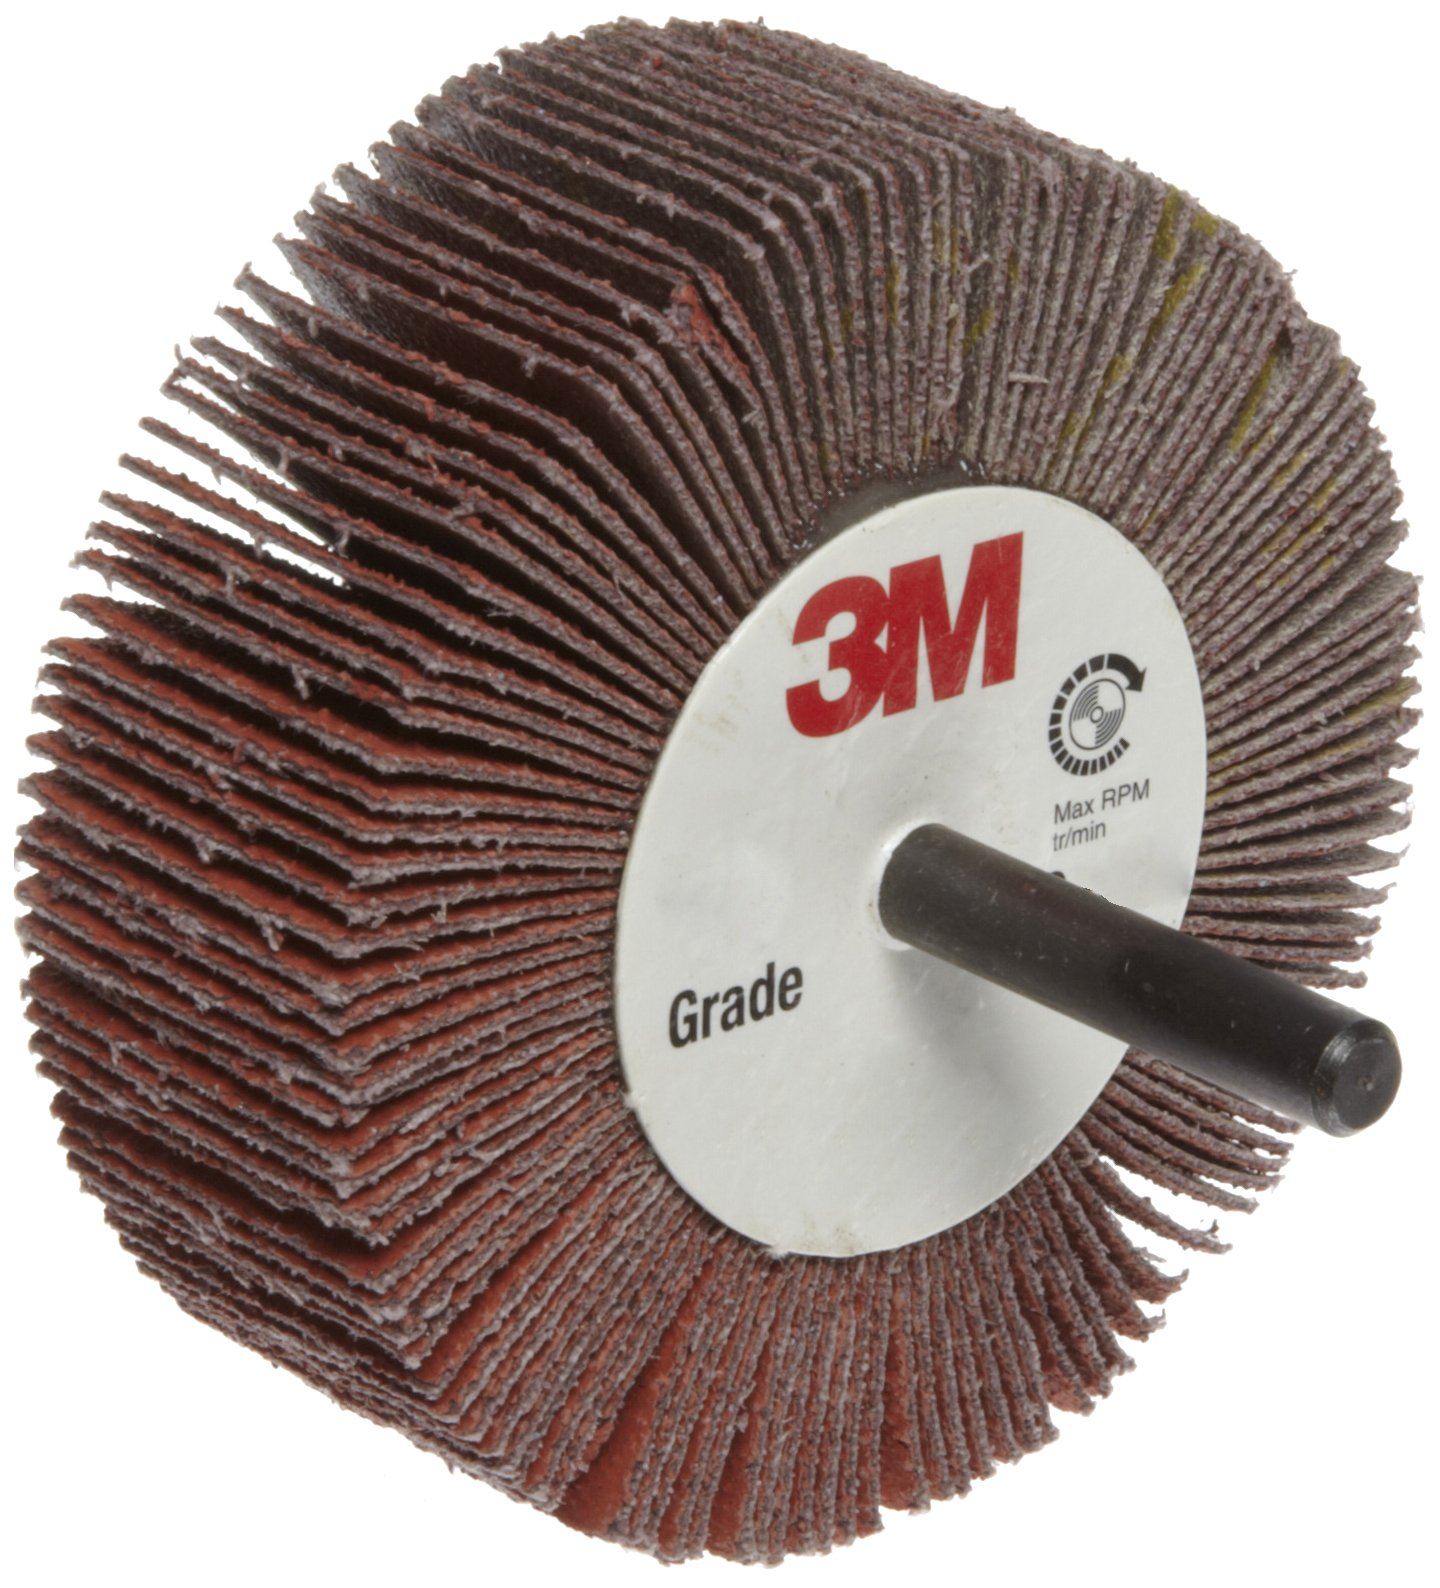 3M Flap Wheel Type 83 747D, Shaft Attachment, Ceramic Grain, 3'' Diameter, 1'' Width, 80 Grit, 20000 rpm  (Pack of 10)